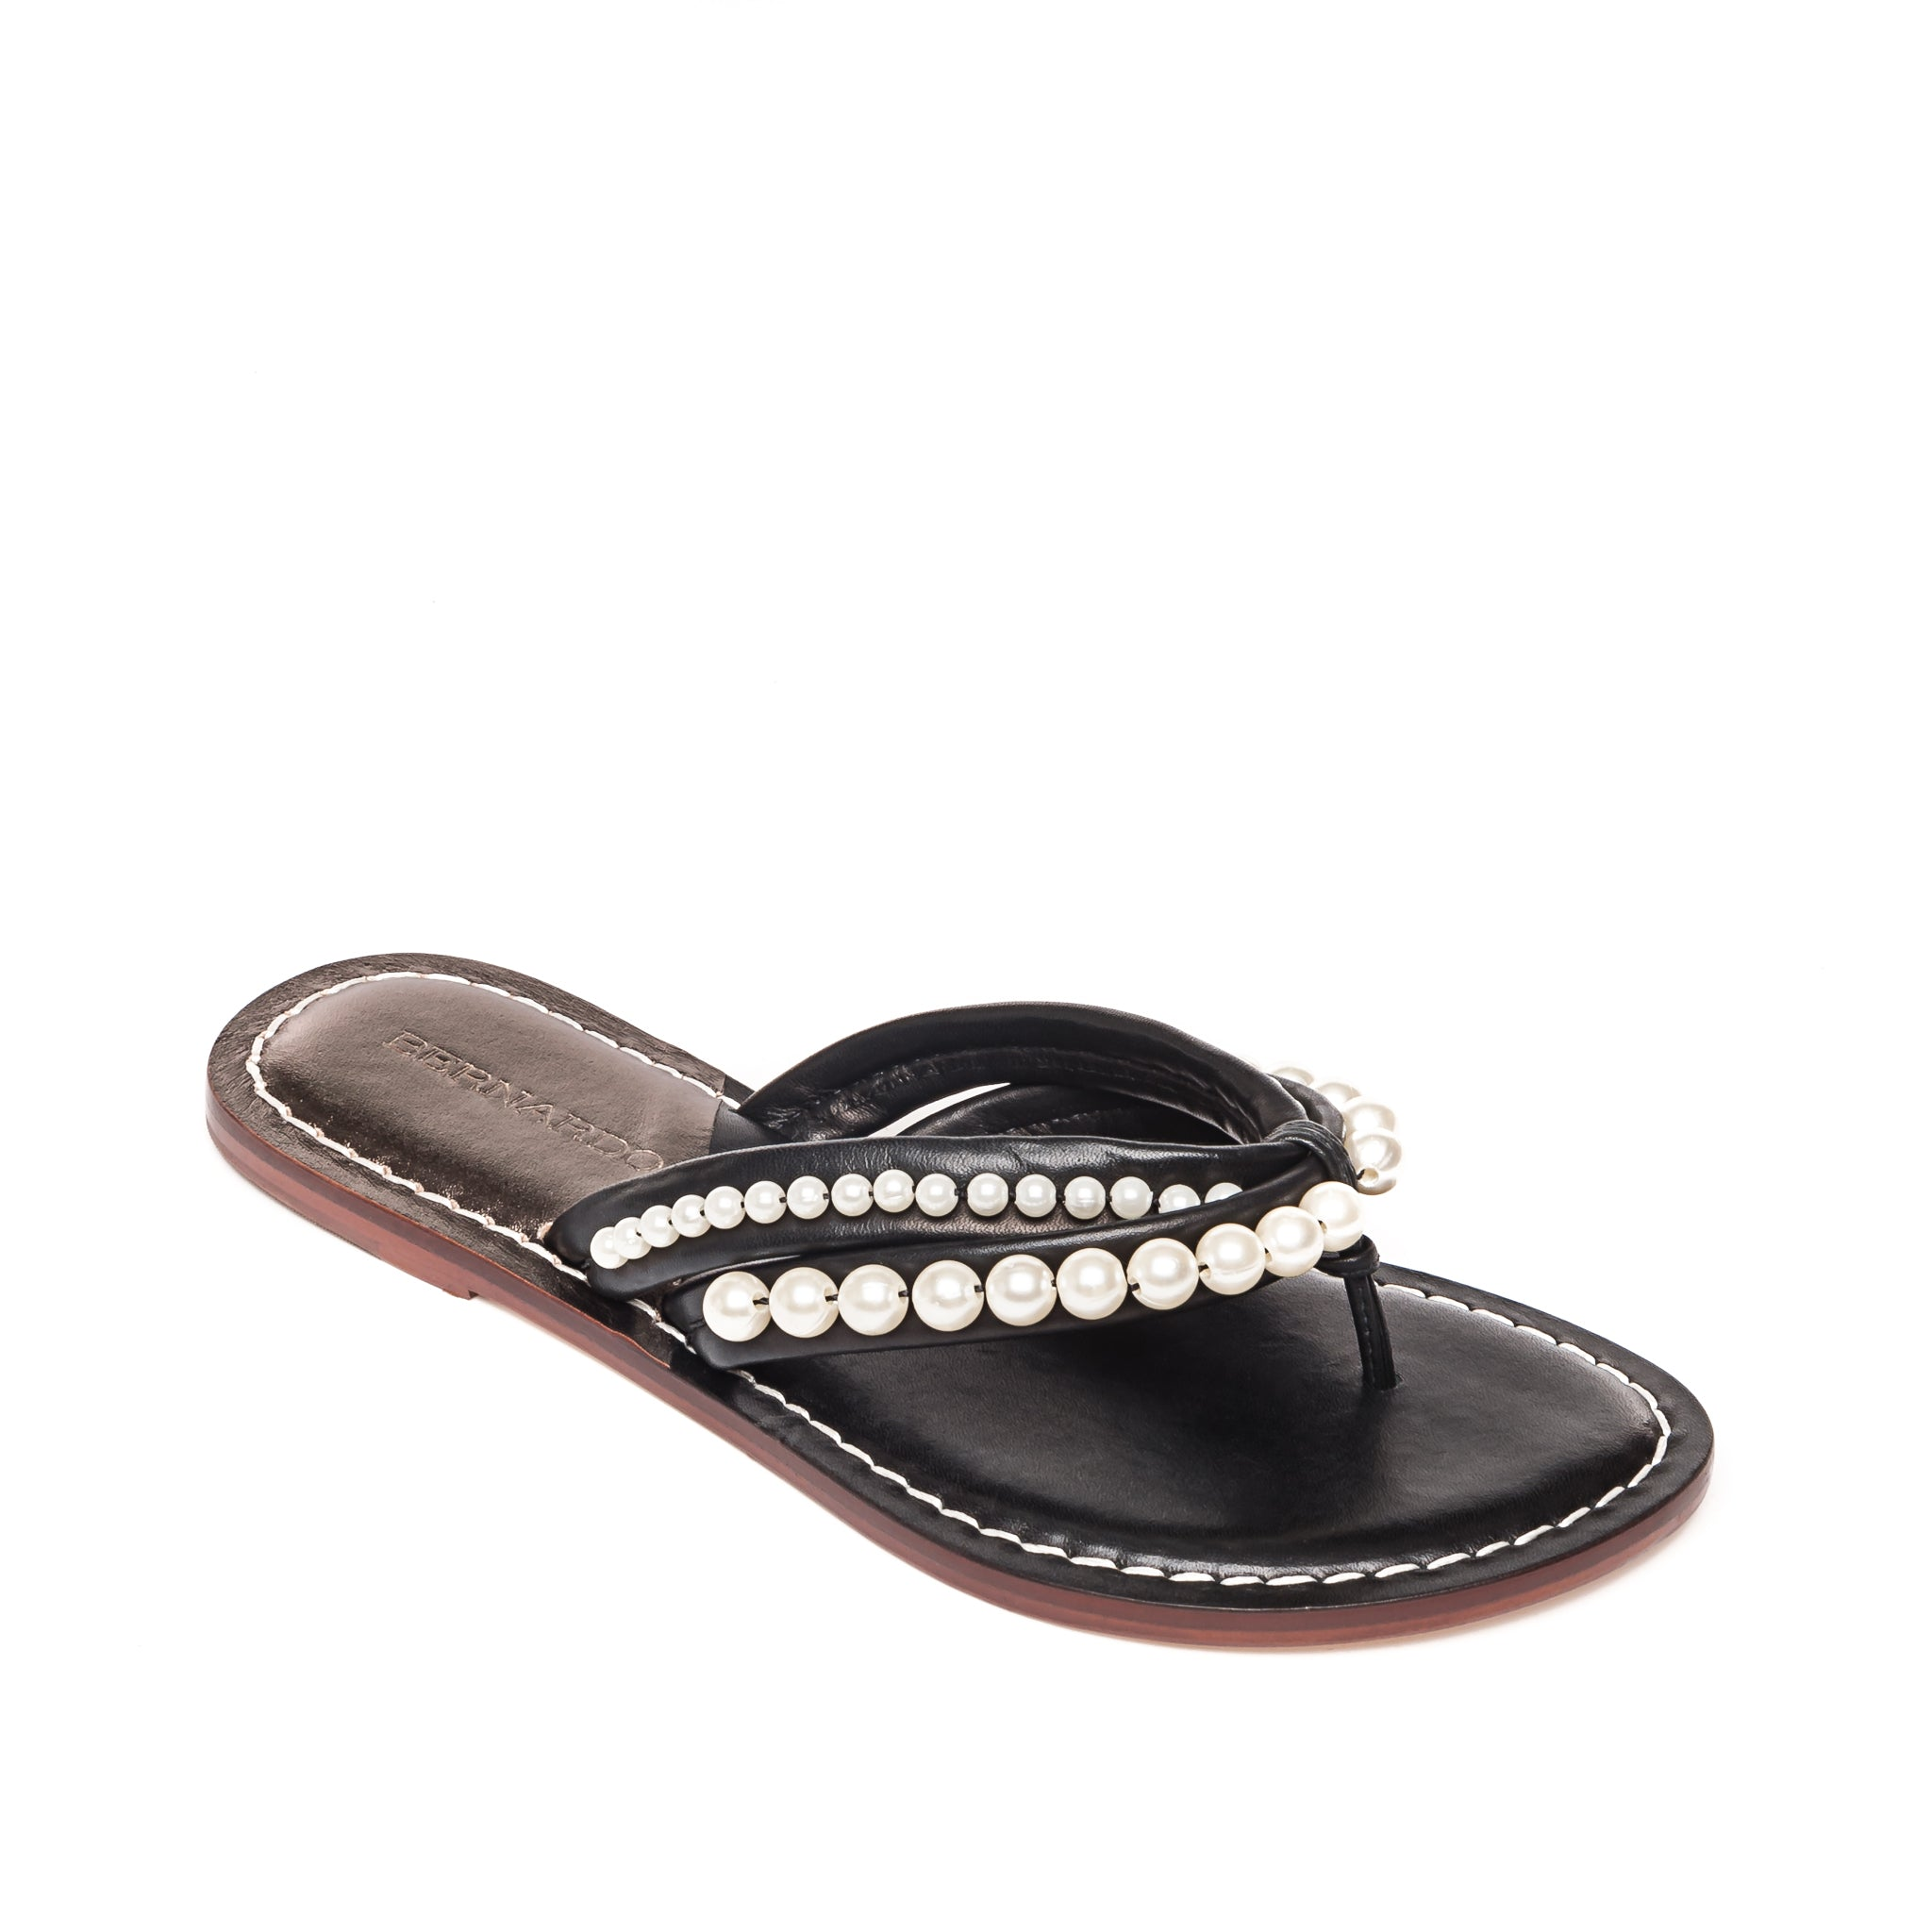 photo of Bernardo 1946's Miami pearl embellished 2 strap sandal, in black leather.